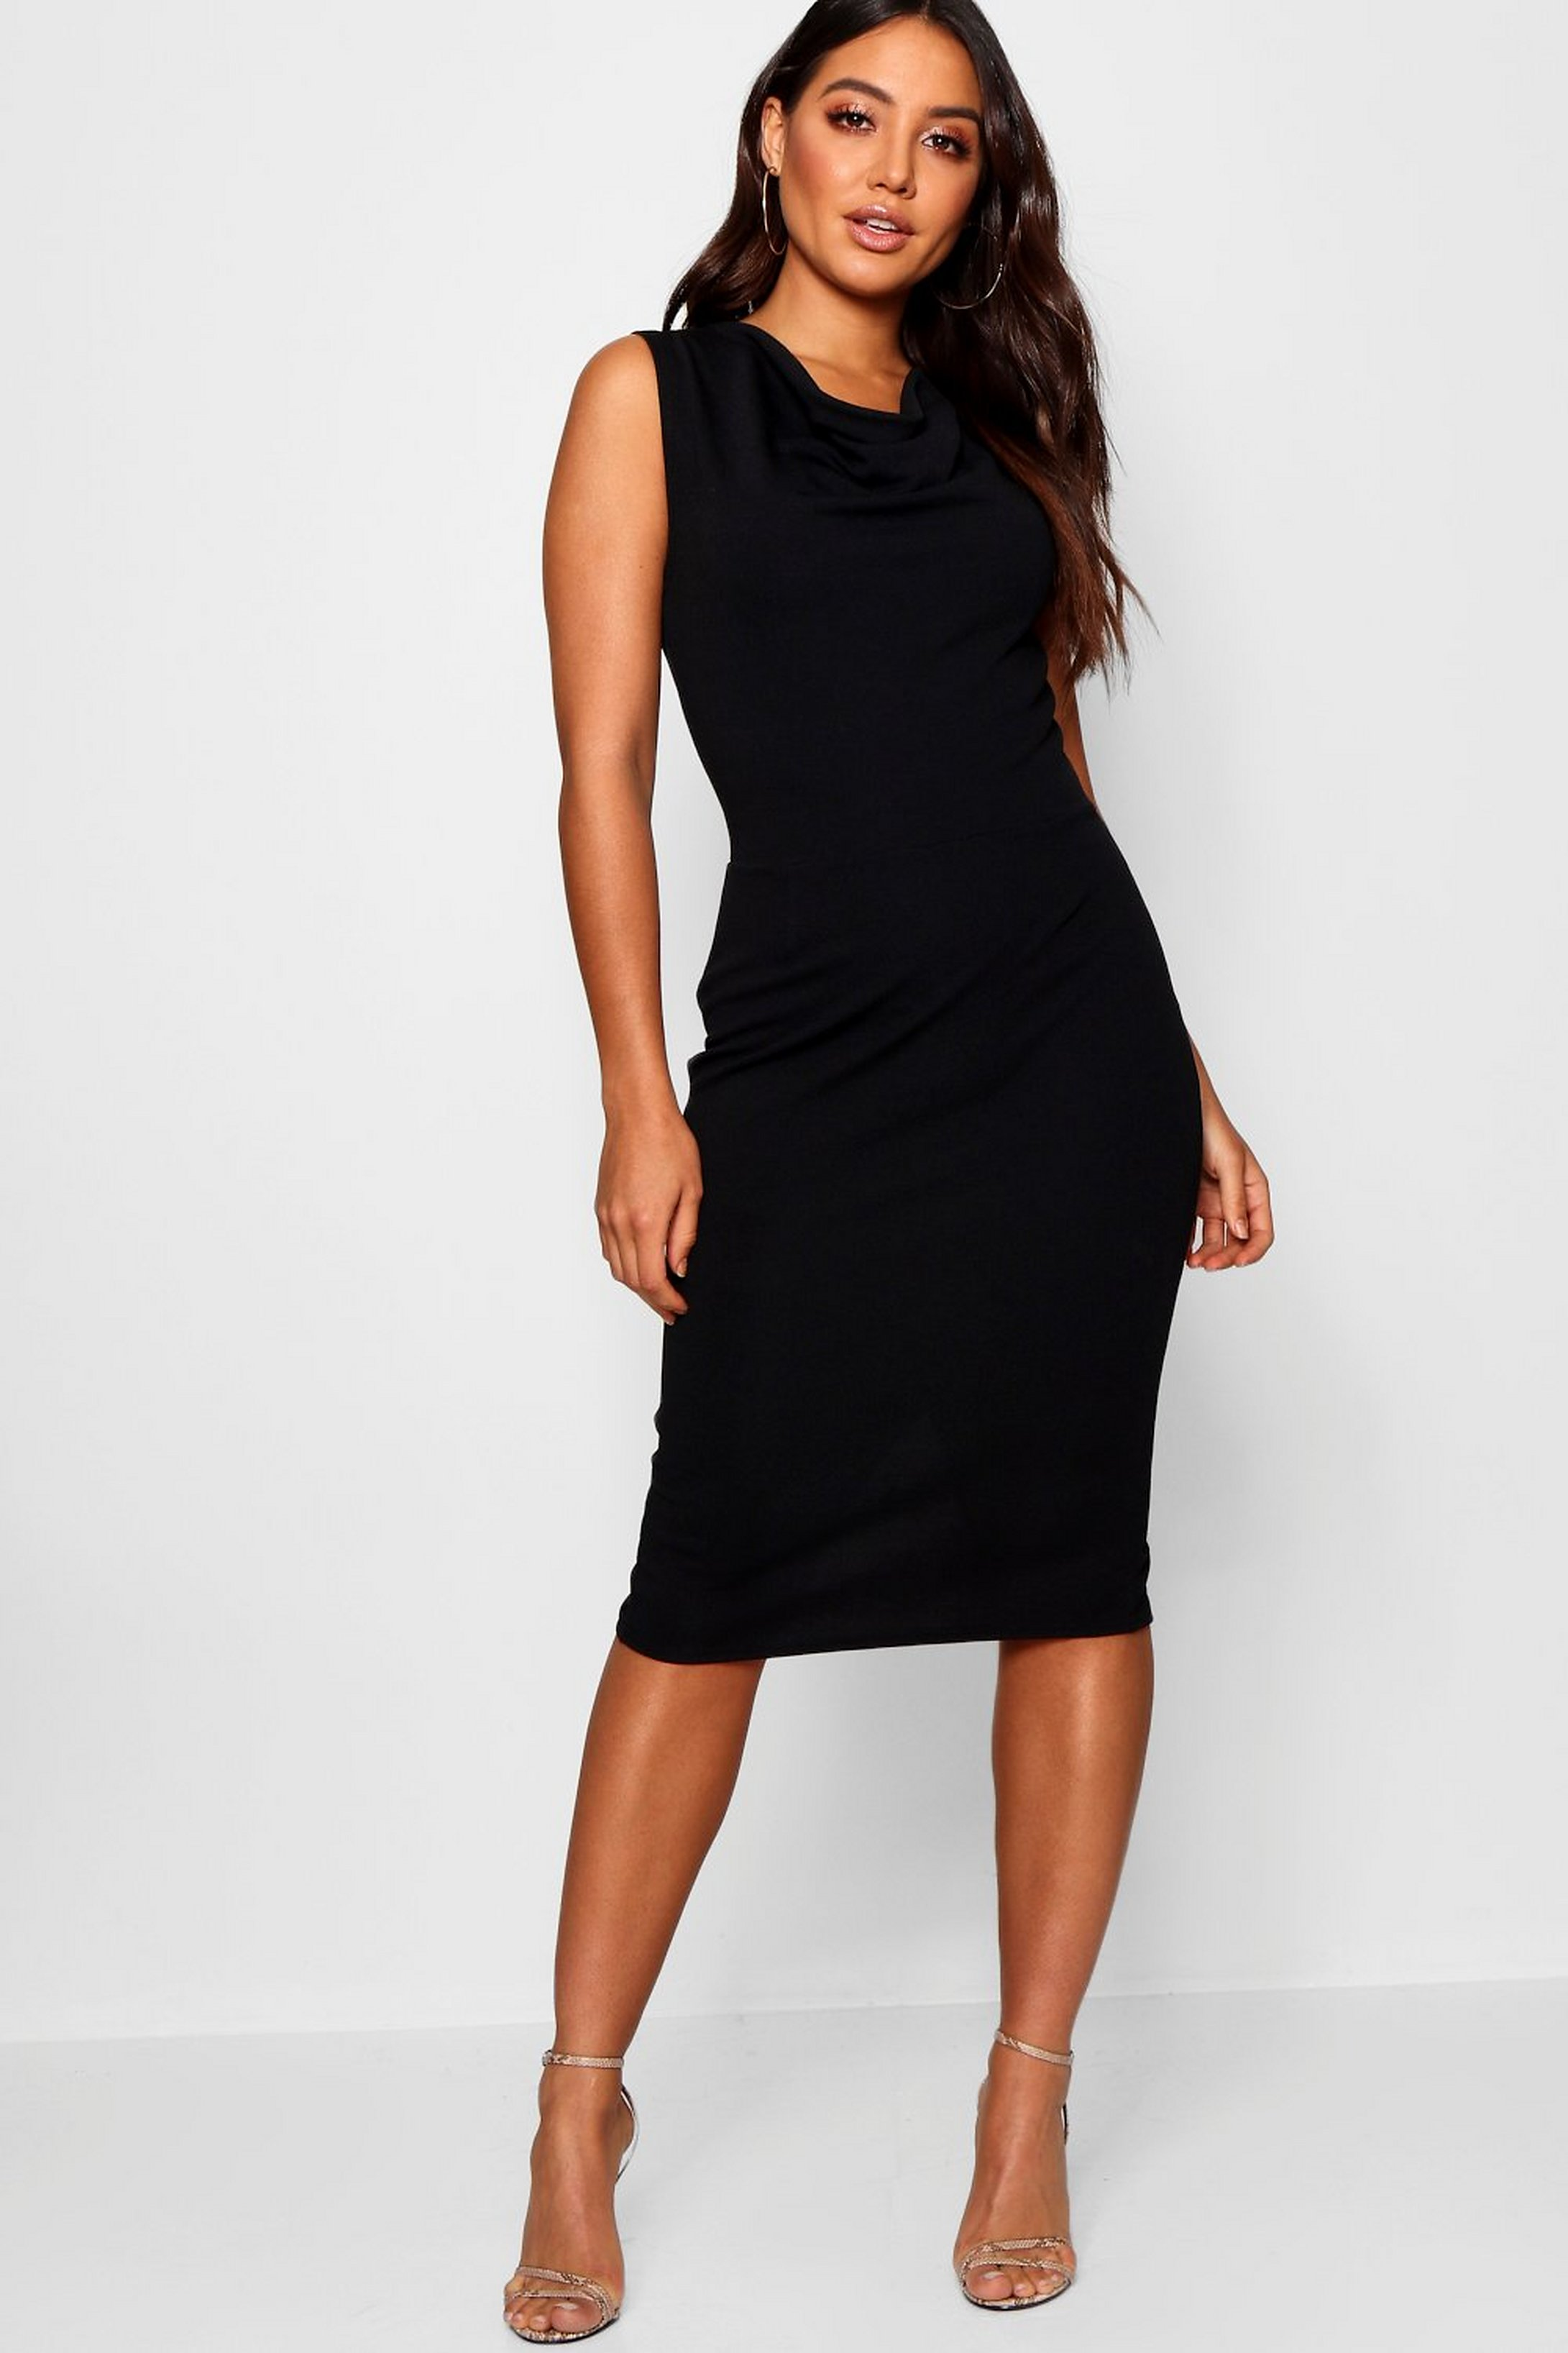 b5311b81bdd7 Womens Black Cowl Neck Midi Dress